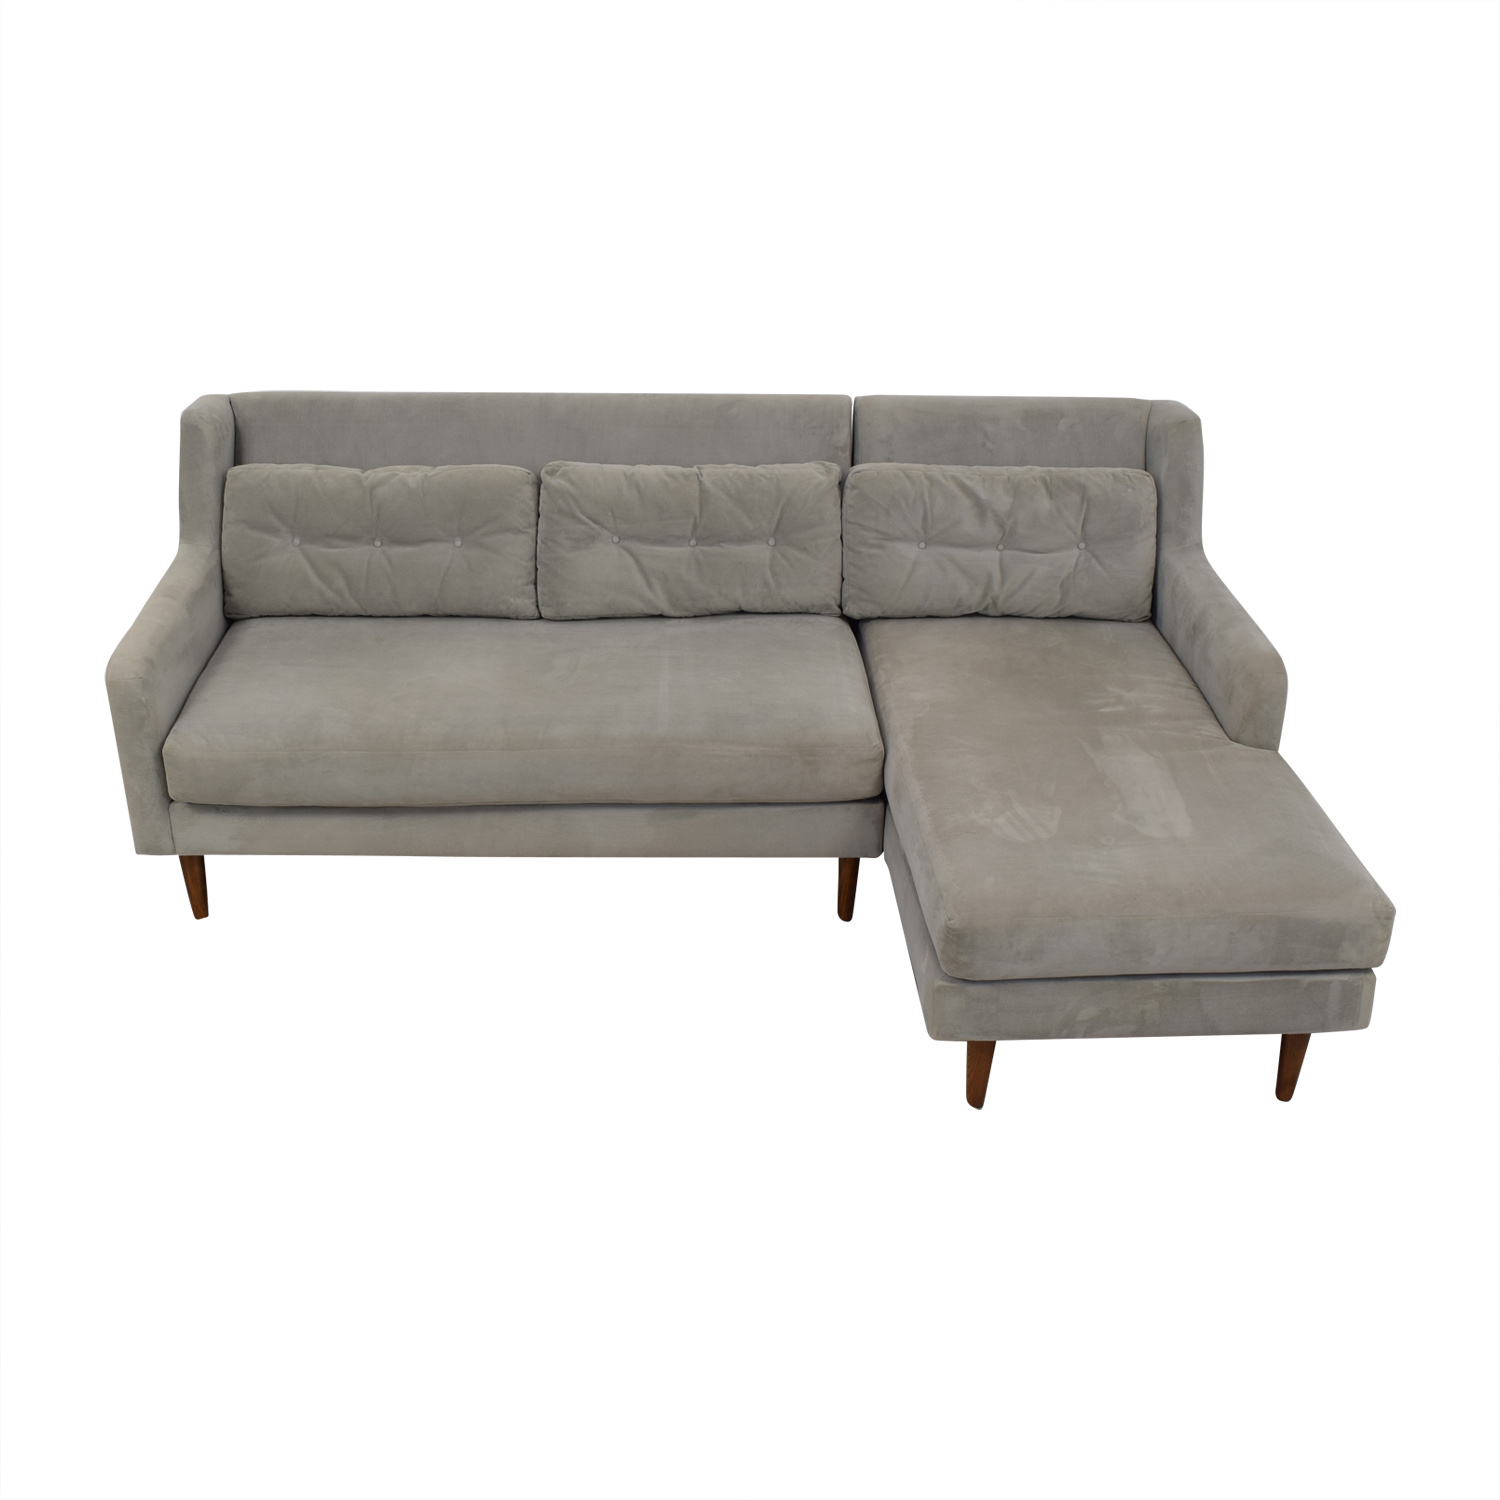 West Elm West Elm Crosby Mid-Century Sectional dimensions